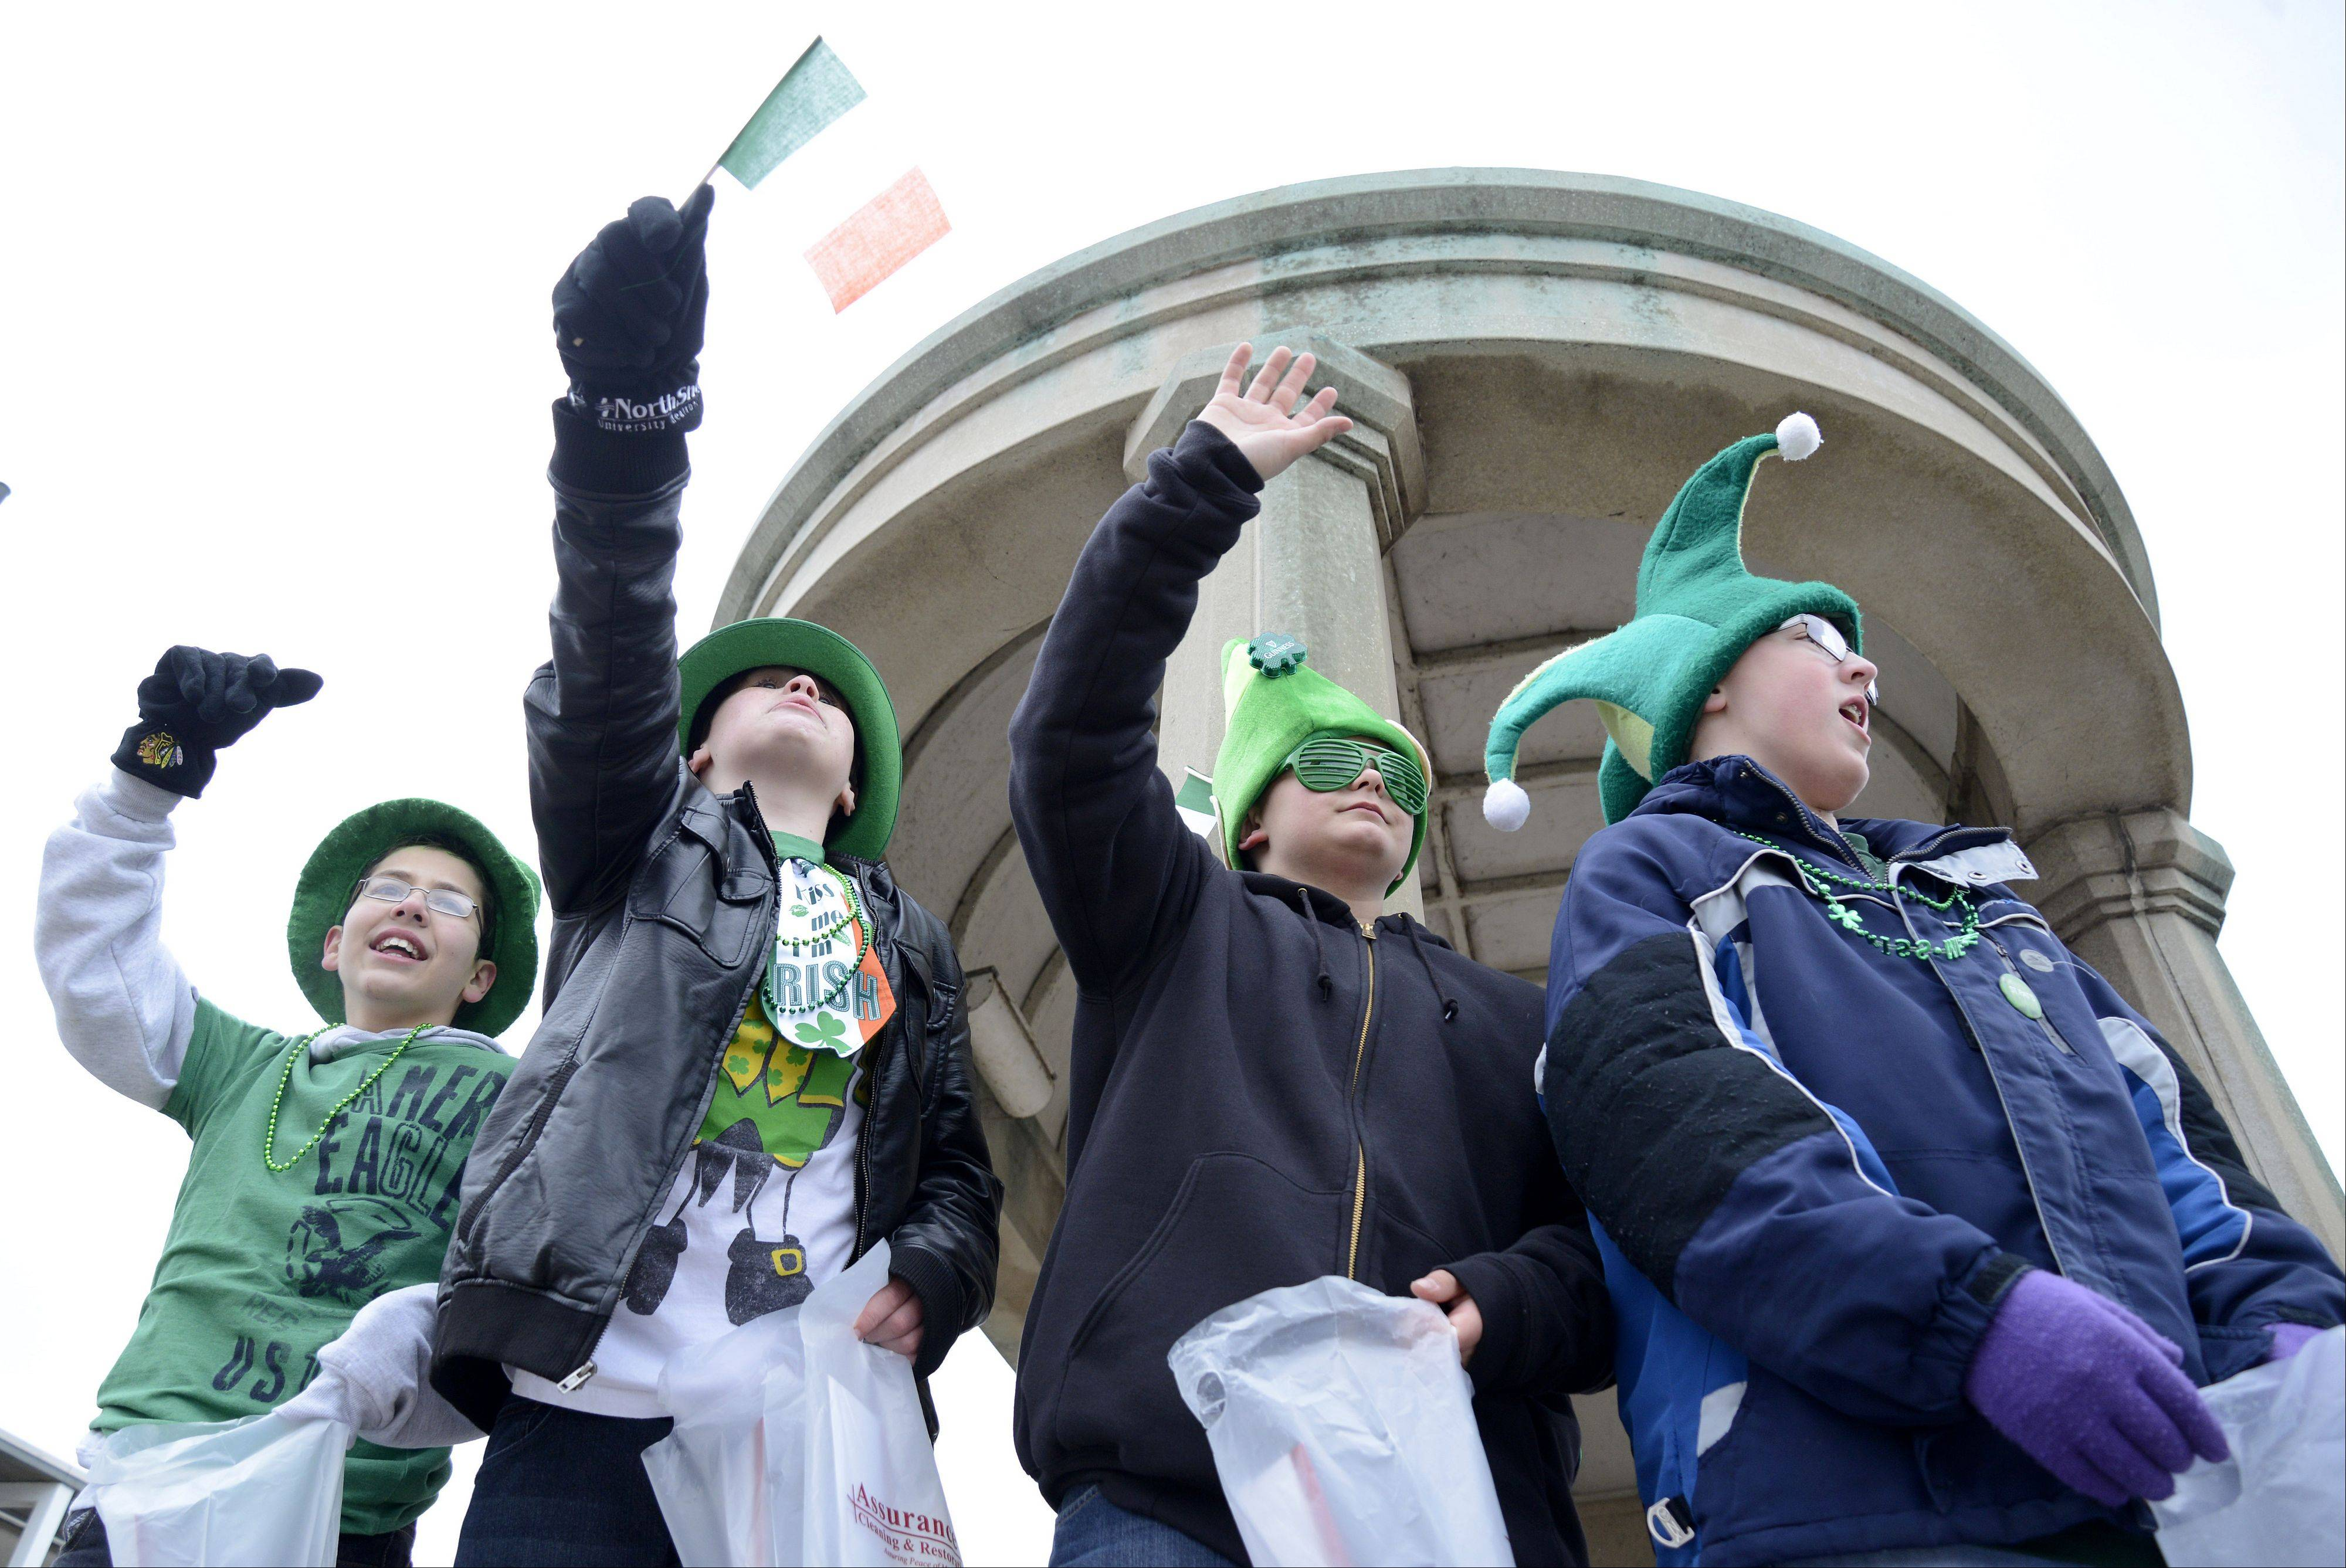 Alex Nicolas, Chase White, Joe Hanisch and Kevin Faulk, all 12 and from St. Charles, cheer on classic Corvettes in the St. Patrick's Day parade in St. Charles Saturday. Joe's 13th birthday is on St. Patrick's Day.